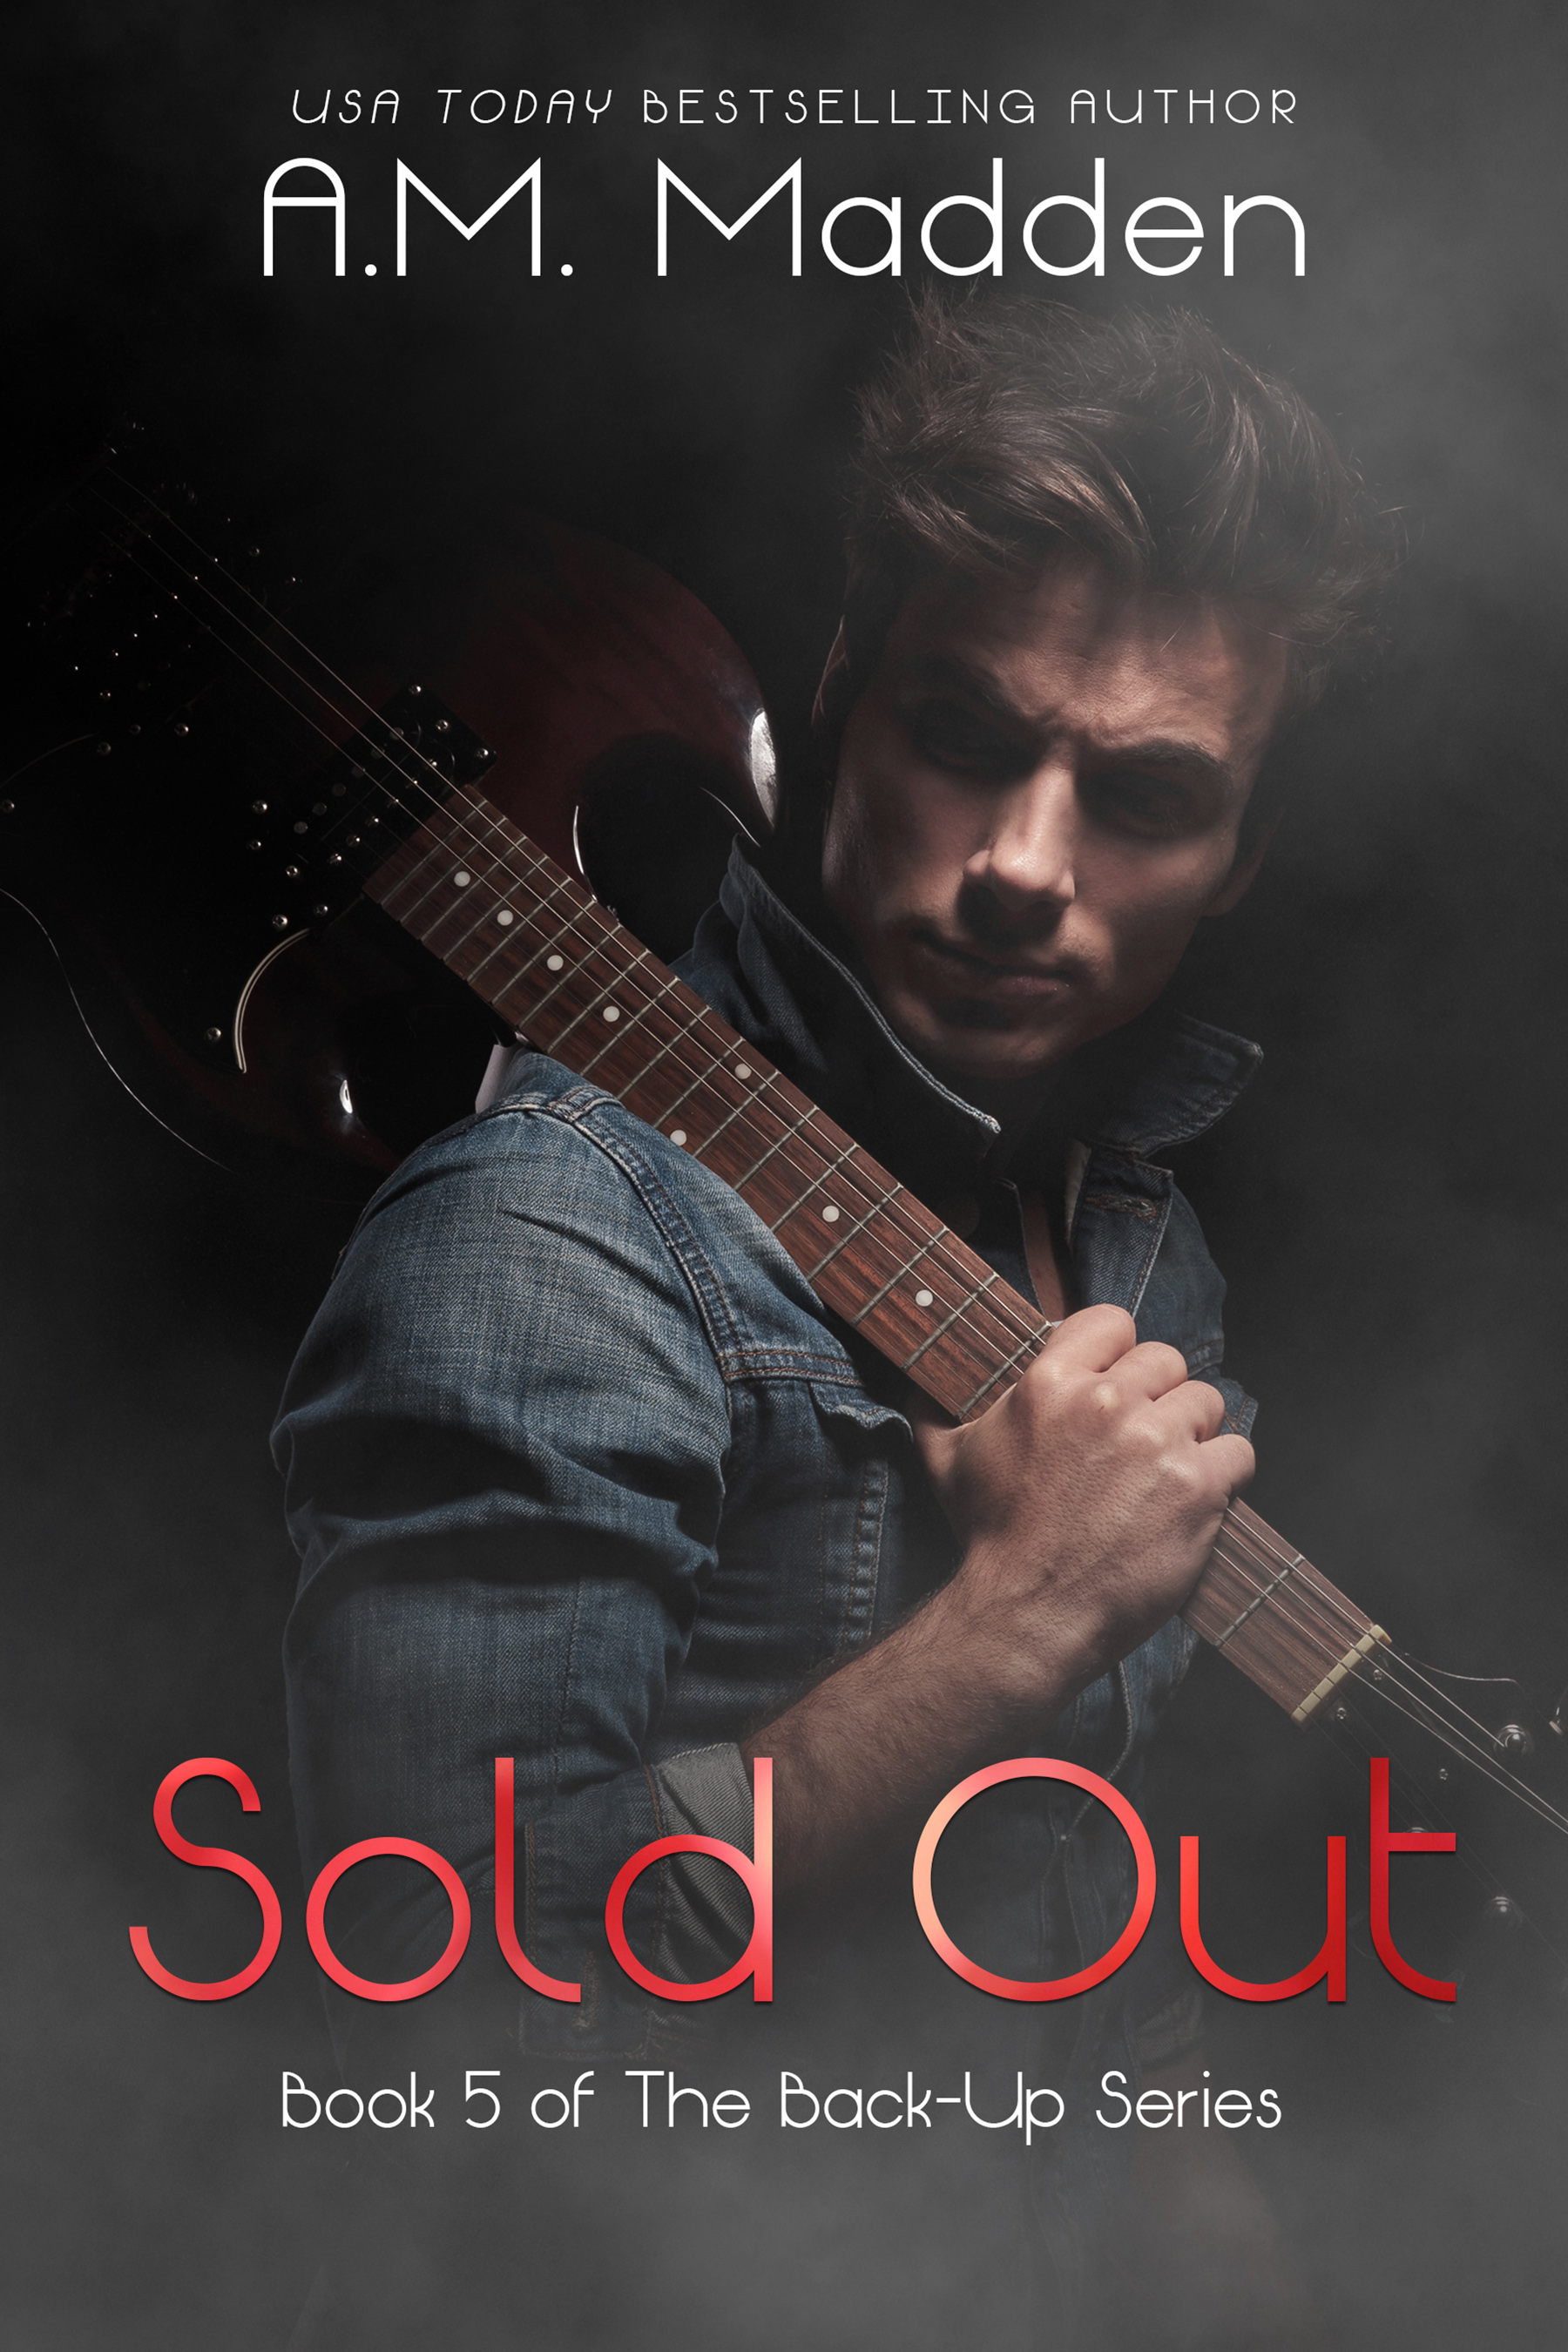 SoldOut_FrontCover.jpg